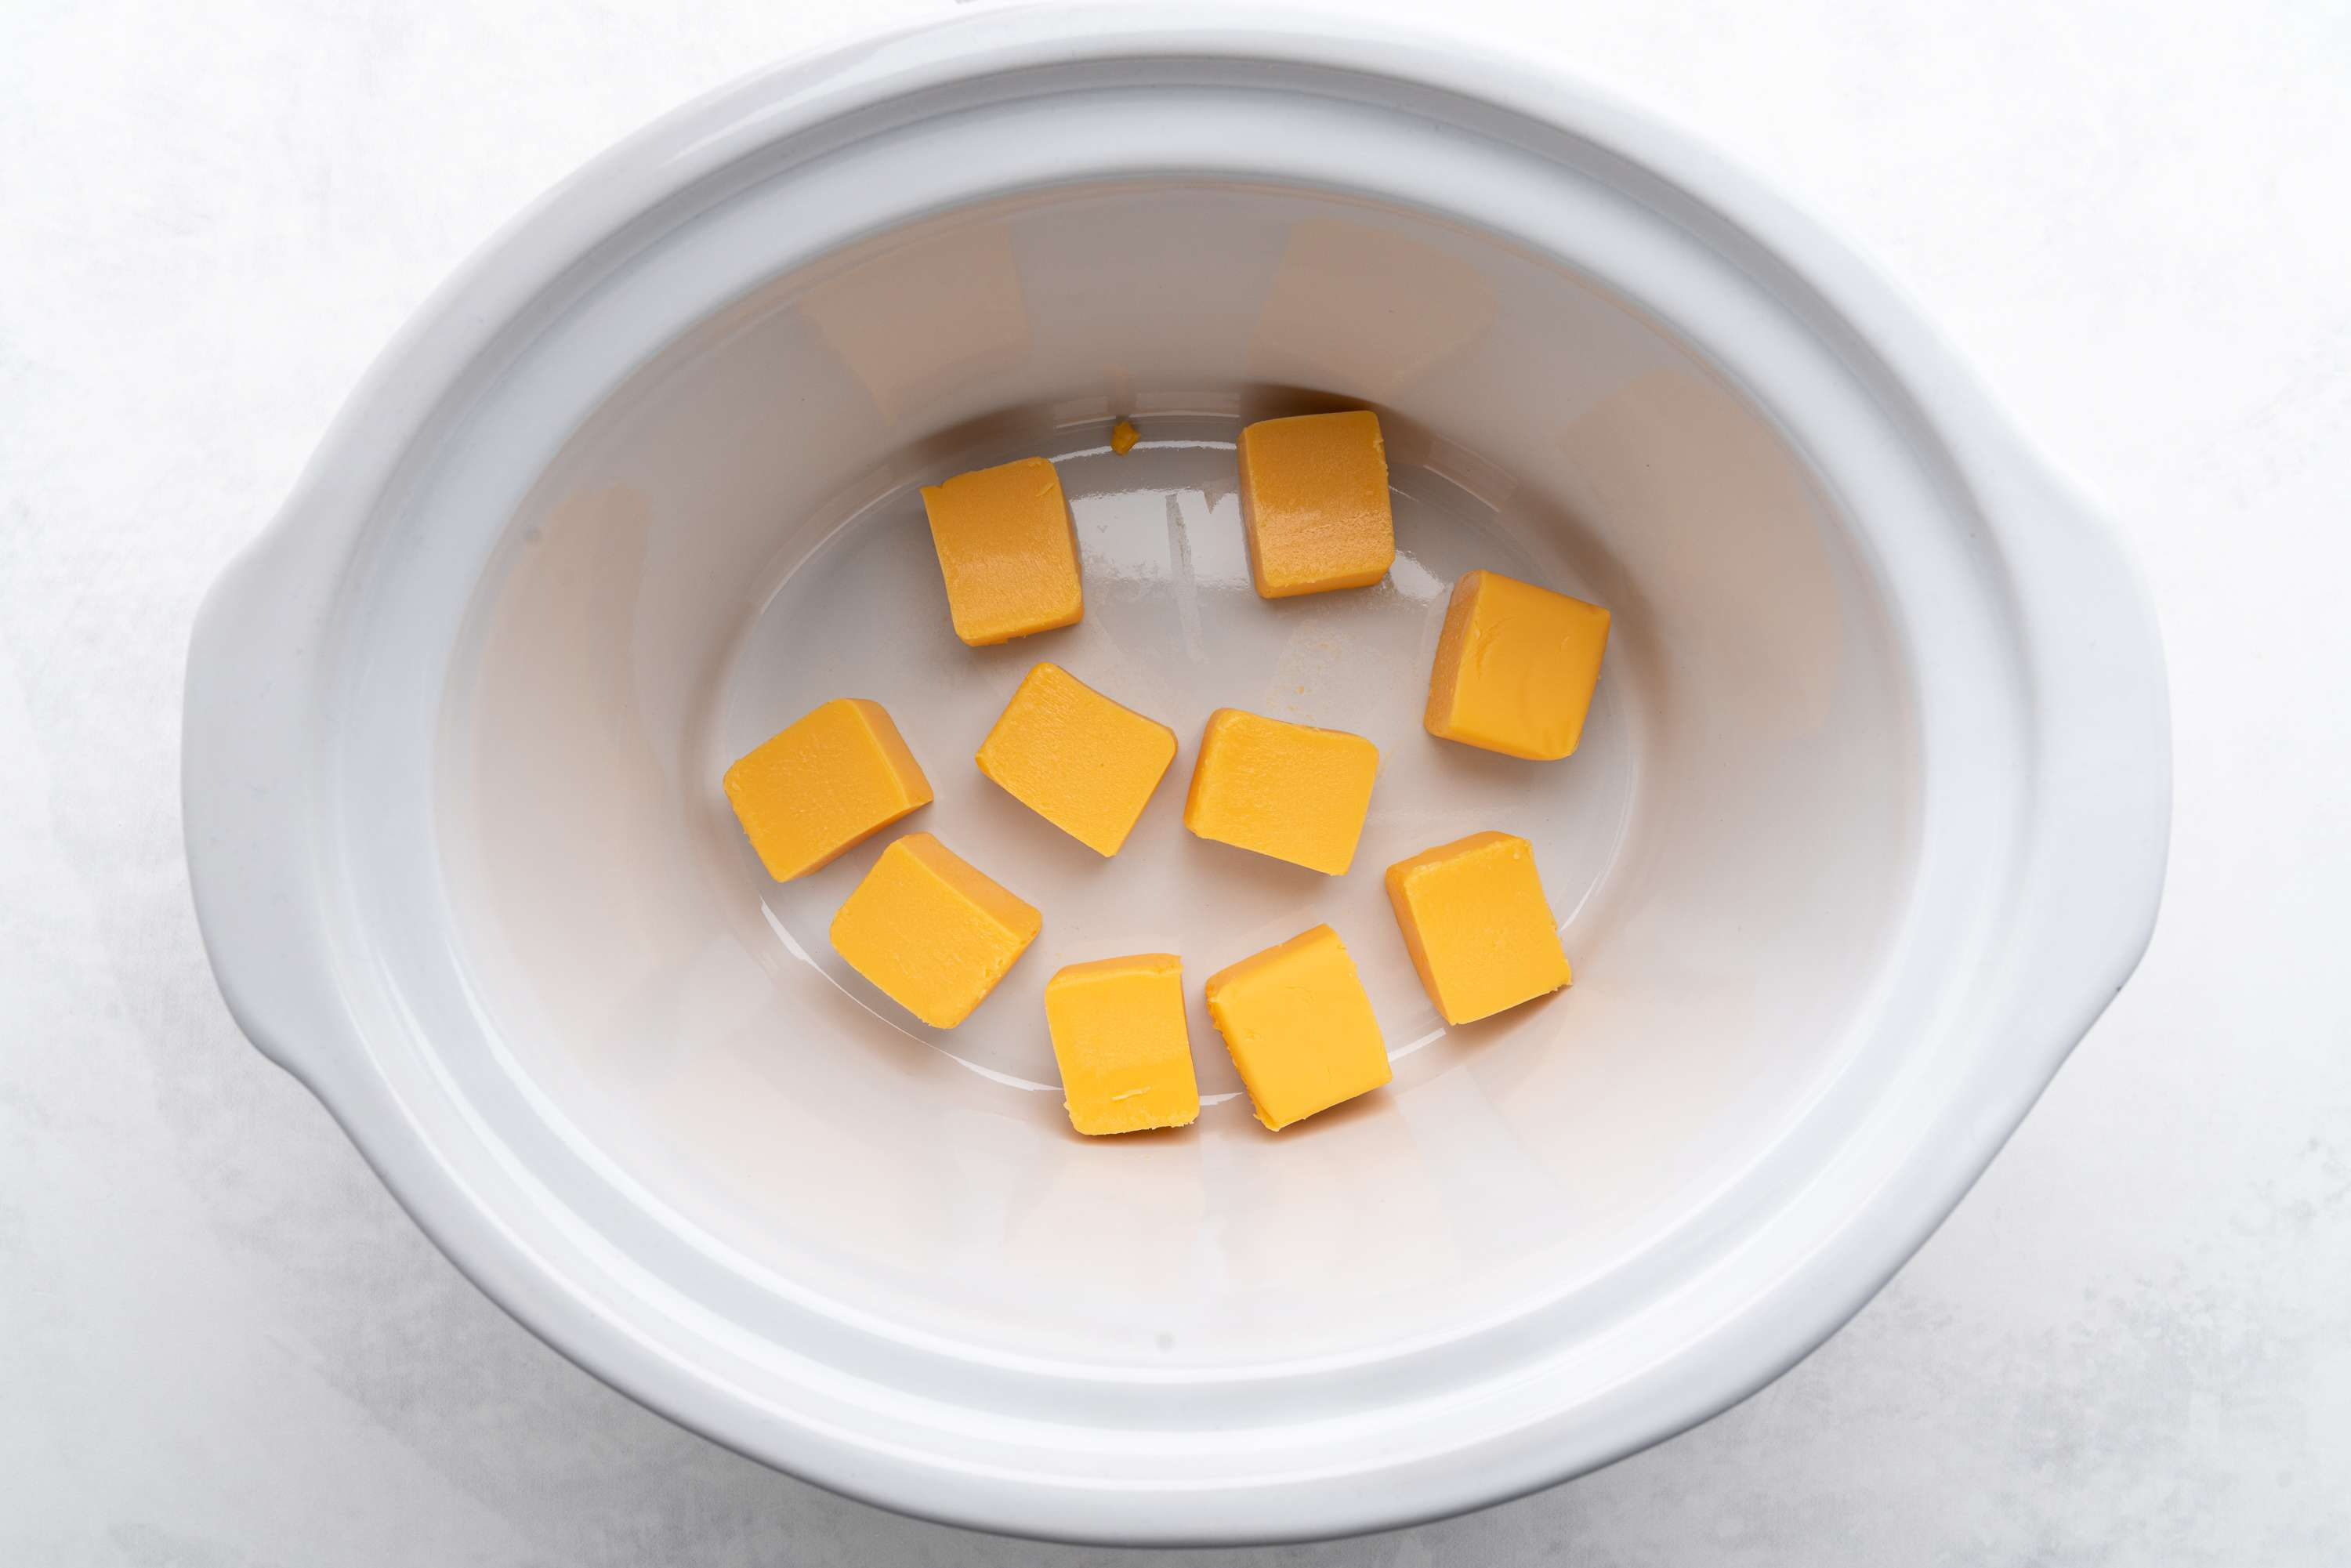 Cube Velveeta cheese and place in slow cooker